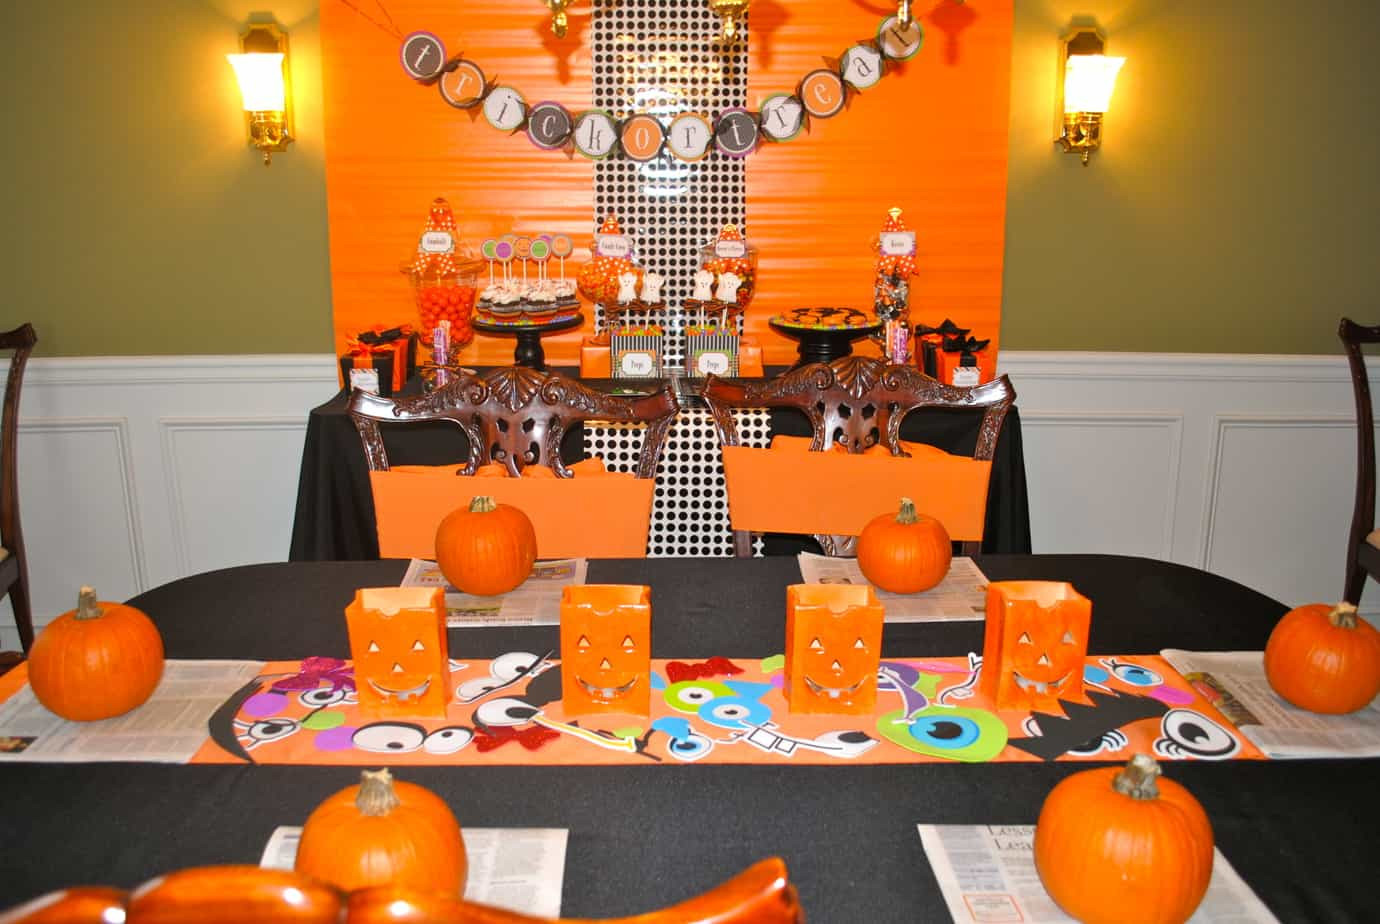 Kids Halloween Party Ideas  Halloween Party Ideas For Kids 2019 With Daily